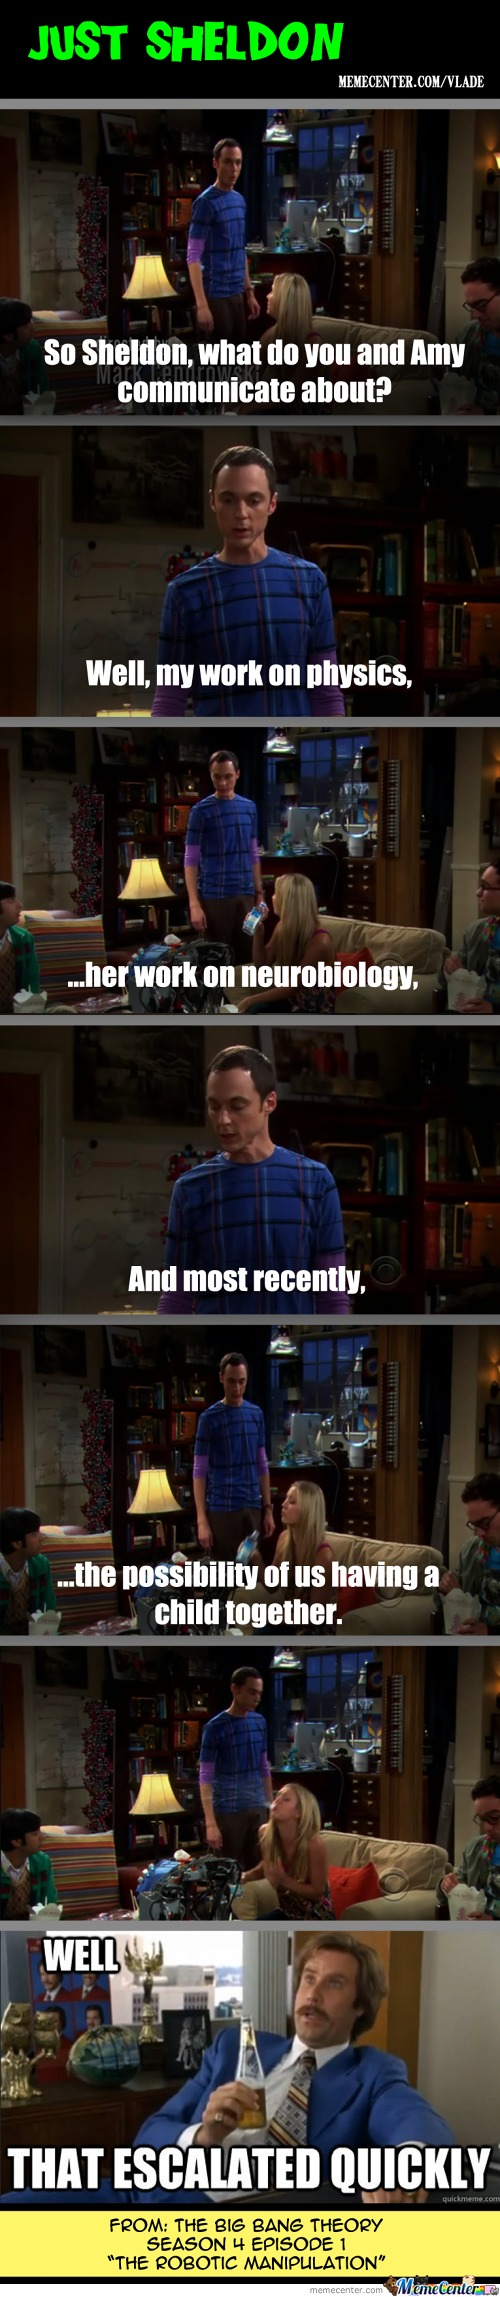 Just Sheldon